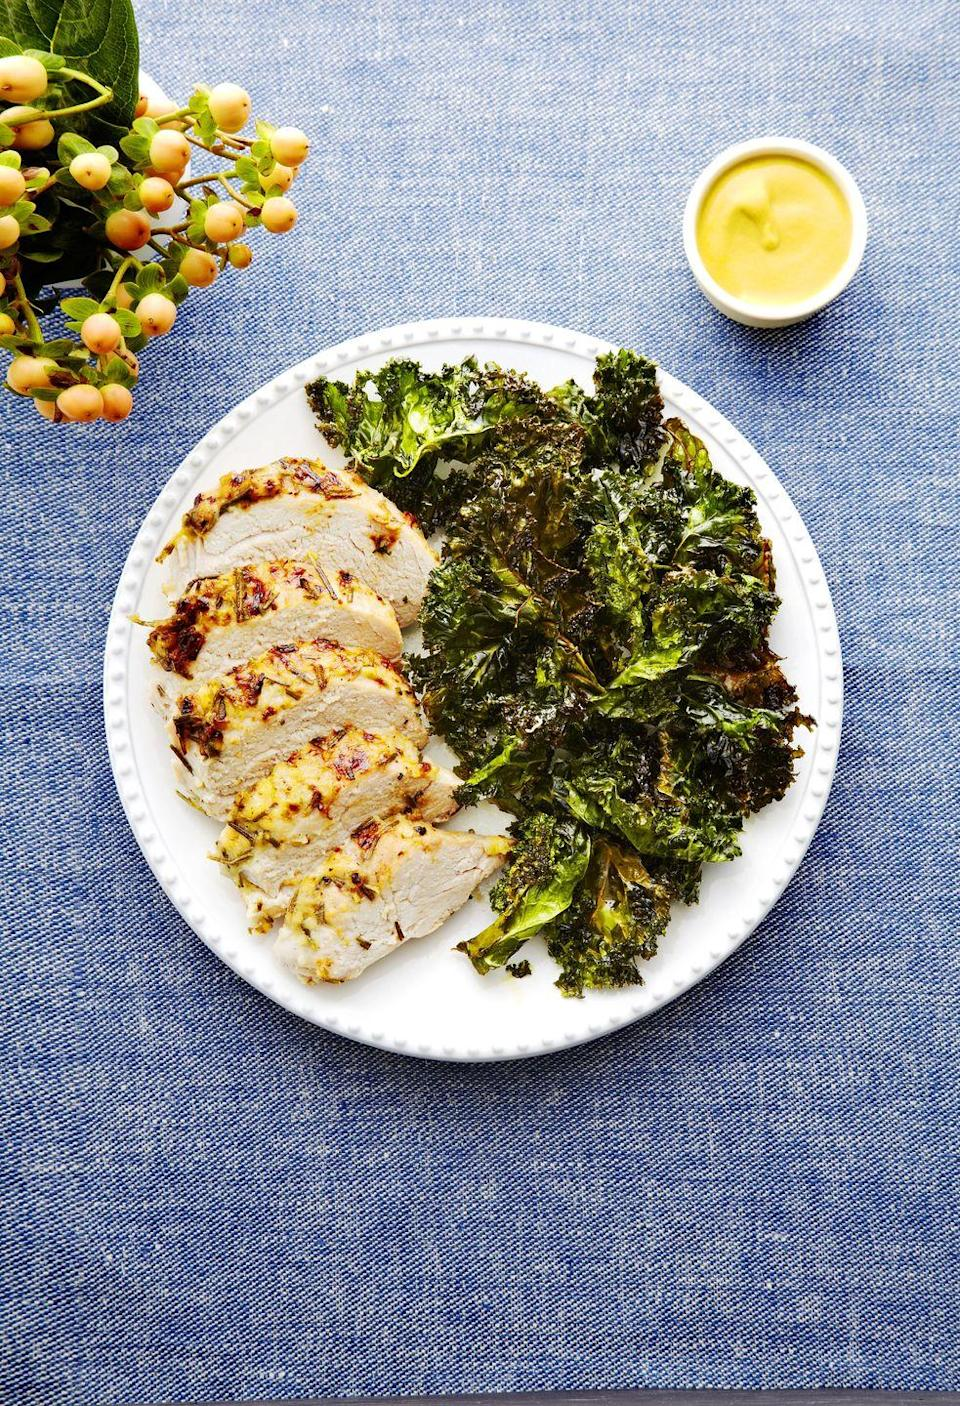 "<p>When roasted, kale makes a wonderful, healthier stand-in to crispy chips. Keep that in mind for whenever a salty craving strikes.</p><p><a href=""https://www.goodhousekeeping.com/food-recipes/a14780/pork-crispy-kale-recipe-ghk1114/"" rel=""nofollow noopener"" target=""_blank"" data-ylk=""slk:Get the recipe for Pork with Crispy Kale »"" class=""link rapid-noclick-resp""><em>Get the recipe for Pork with Crispy Kale »</em></a></p>"